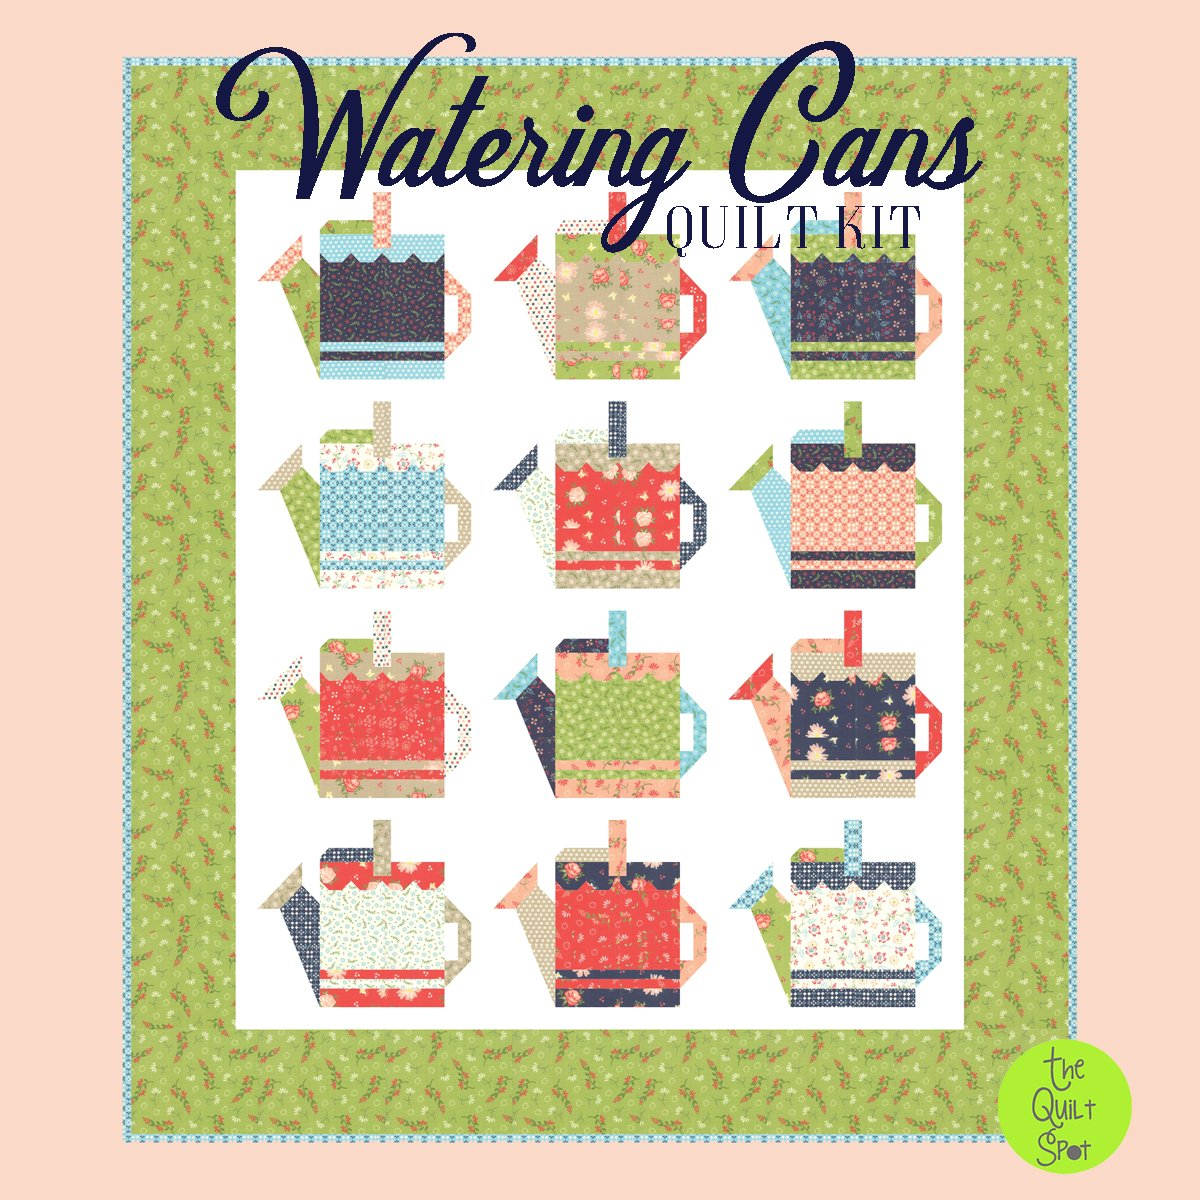 Watering Can Quilt Kit